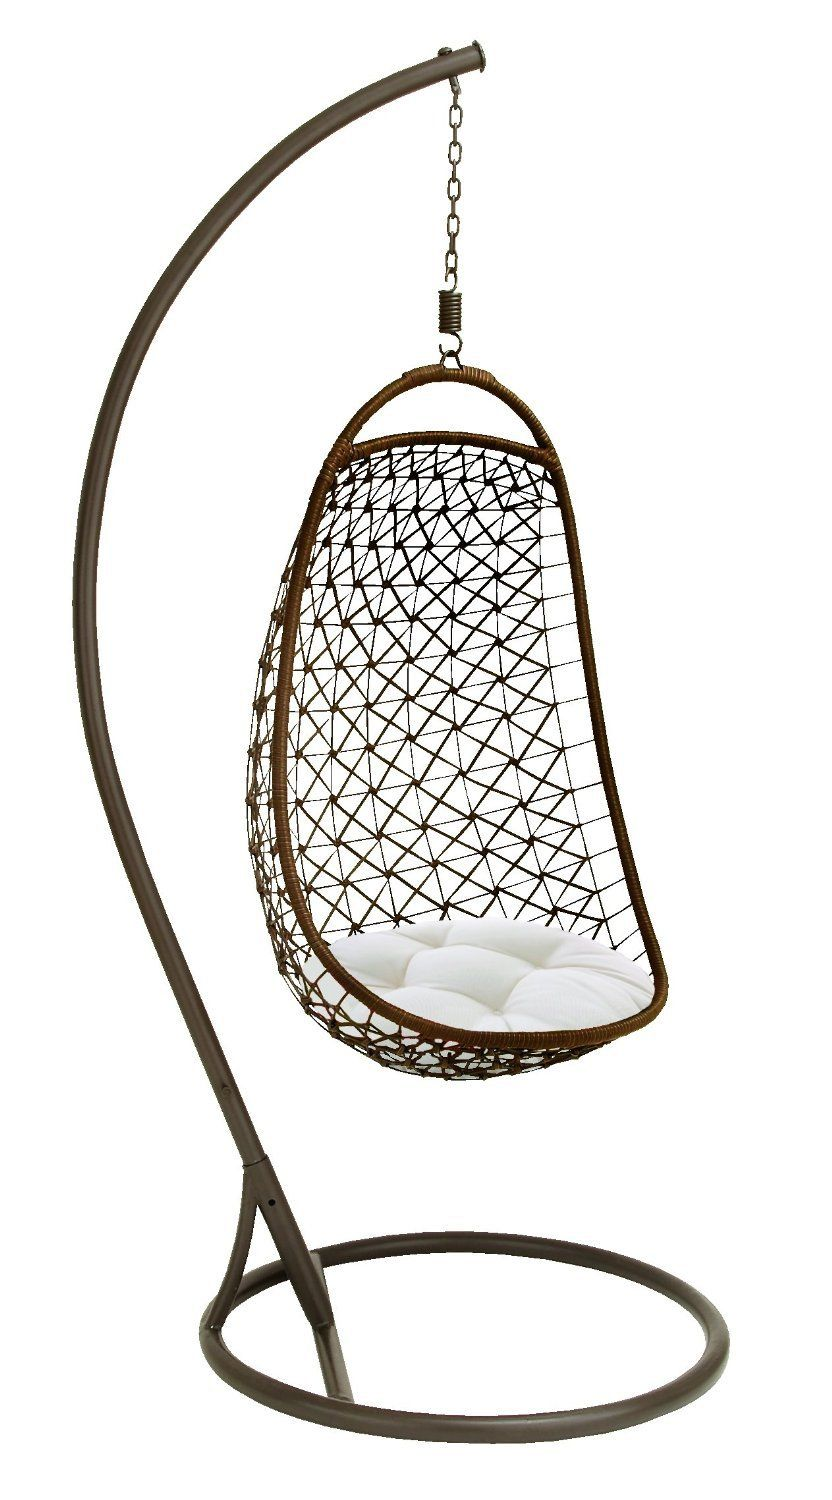 Hang out like a pro in these kickass hanging chairs hanging chair